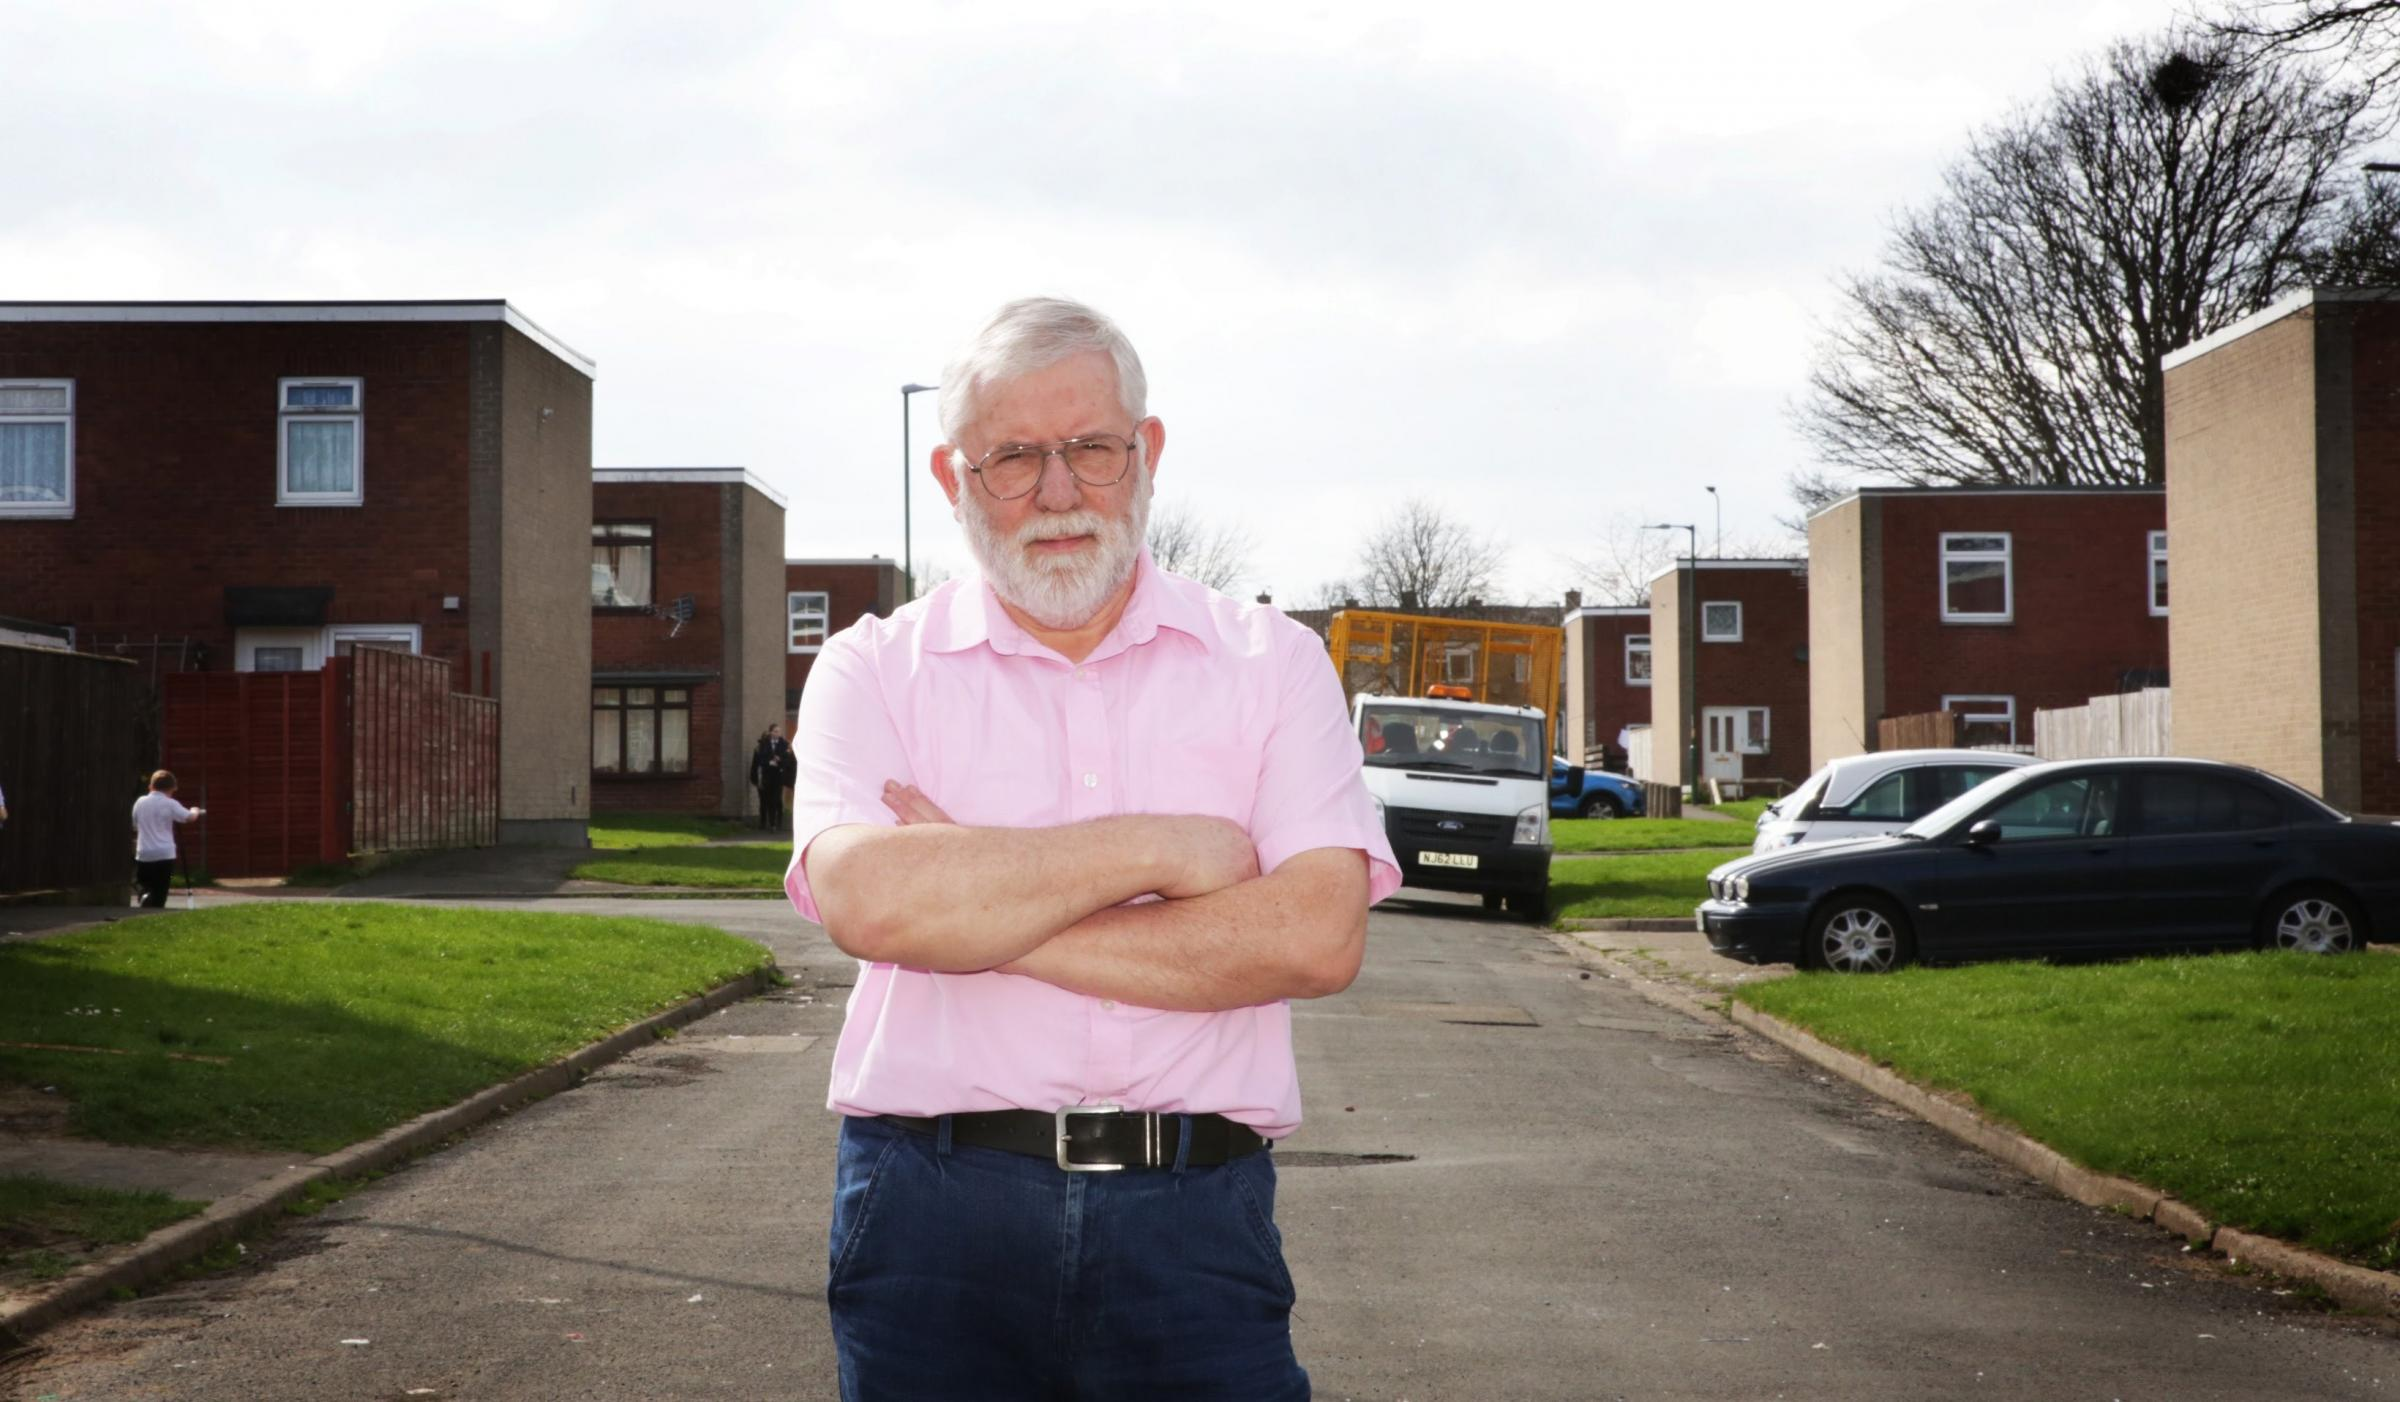 Livin tenant Derick Sutton, 72, of Kirkstone Place, says he and his wife are filled with dread at the prospect of having to leave their home Picture: SARAH CALDECOTT